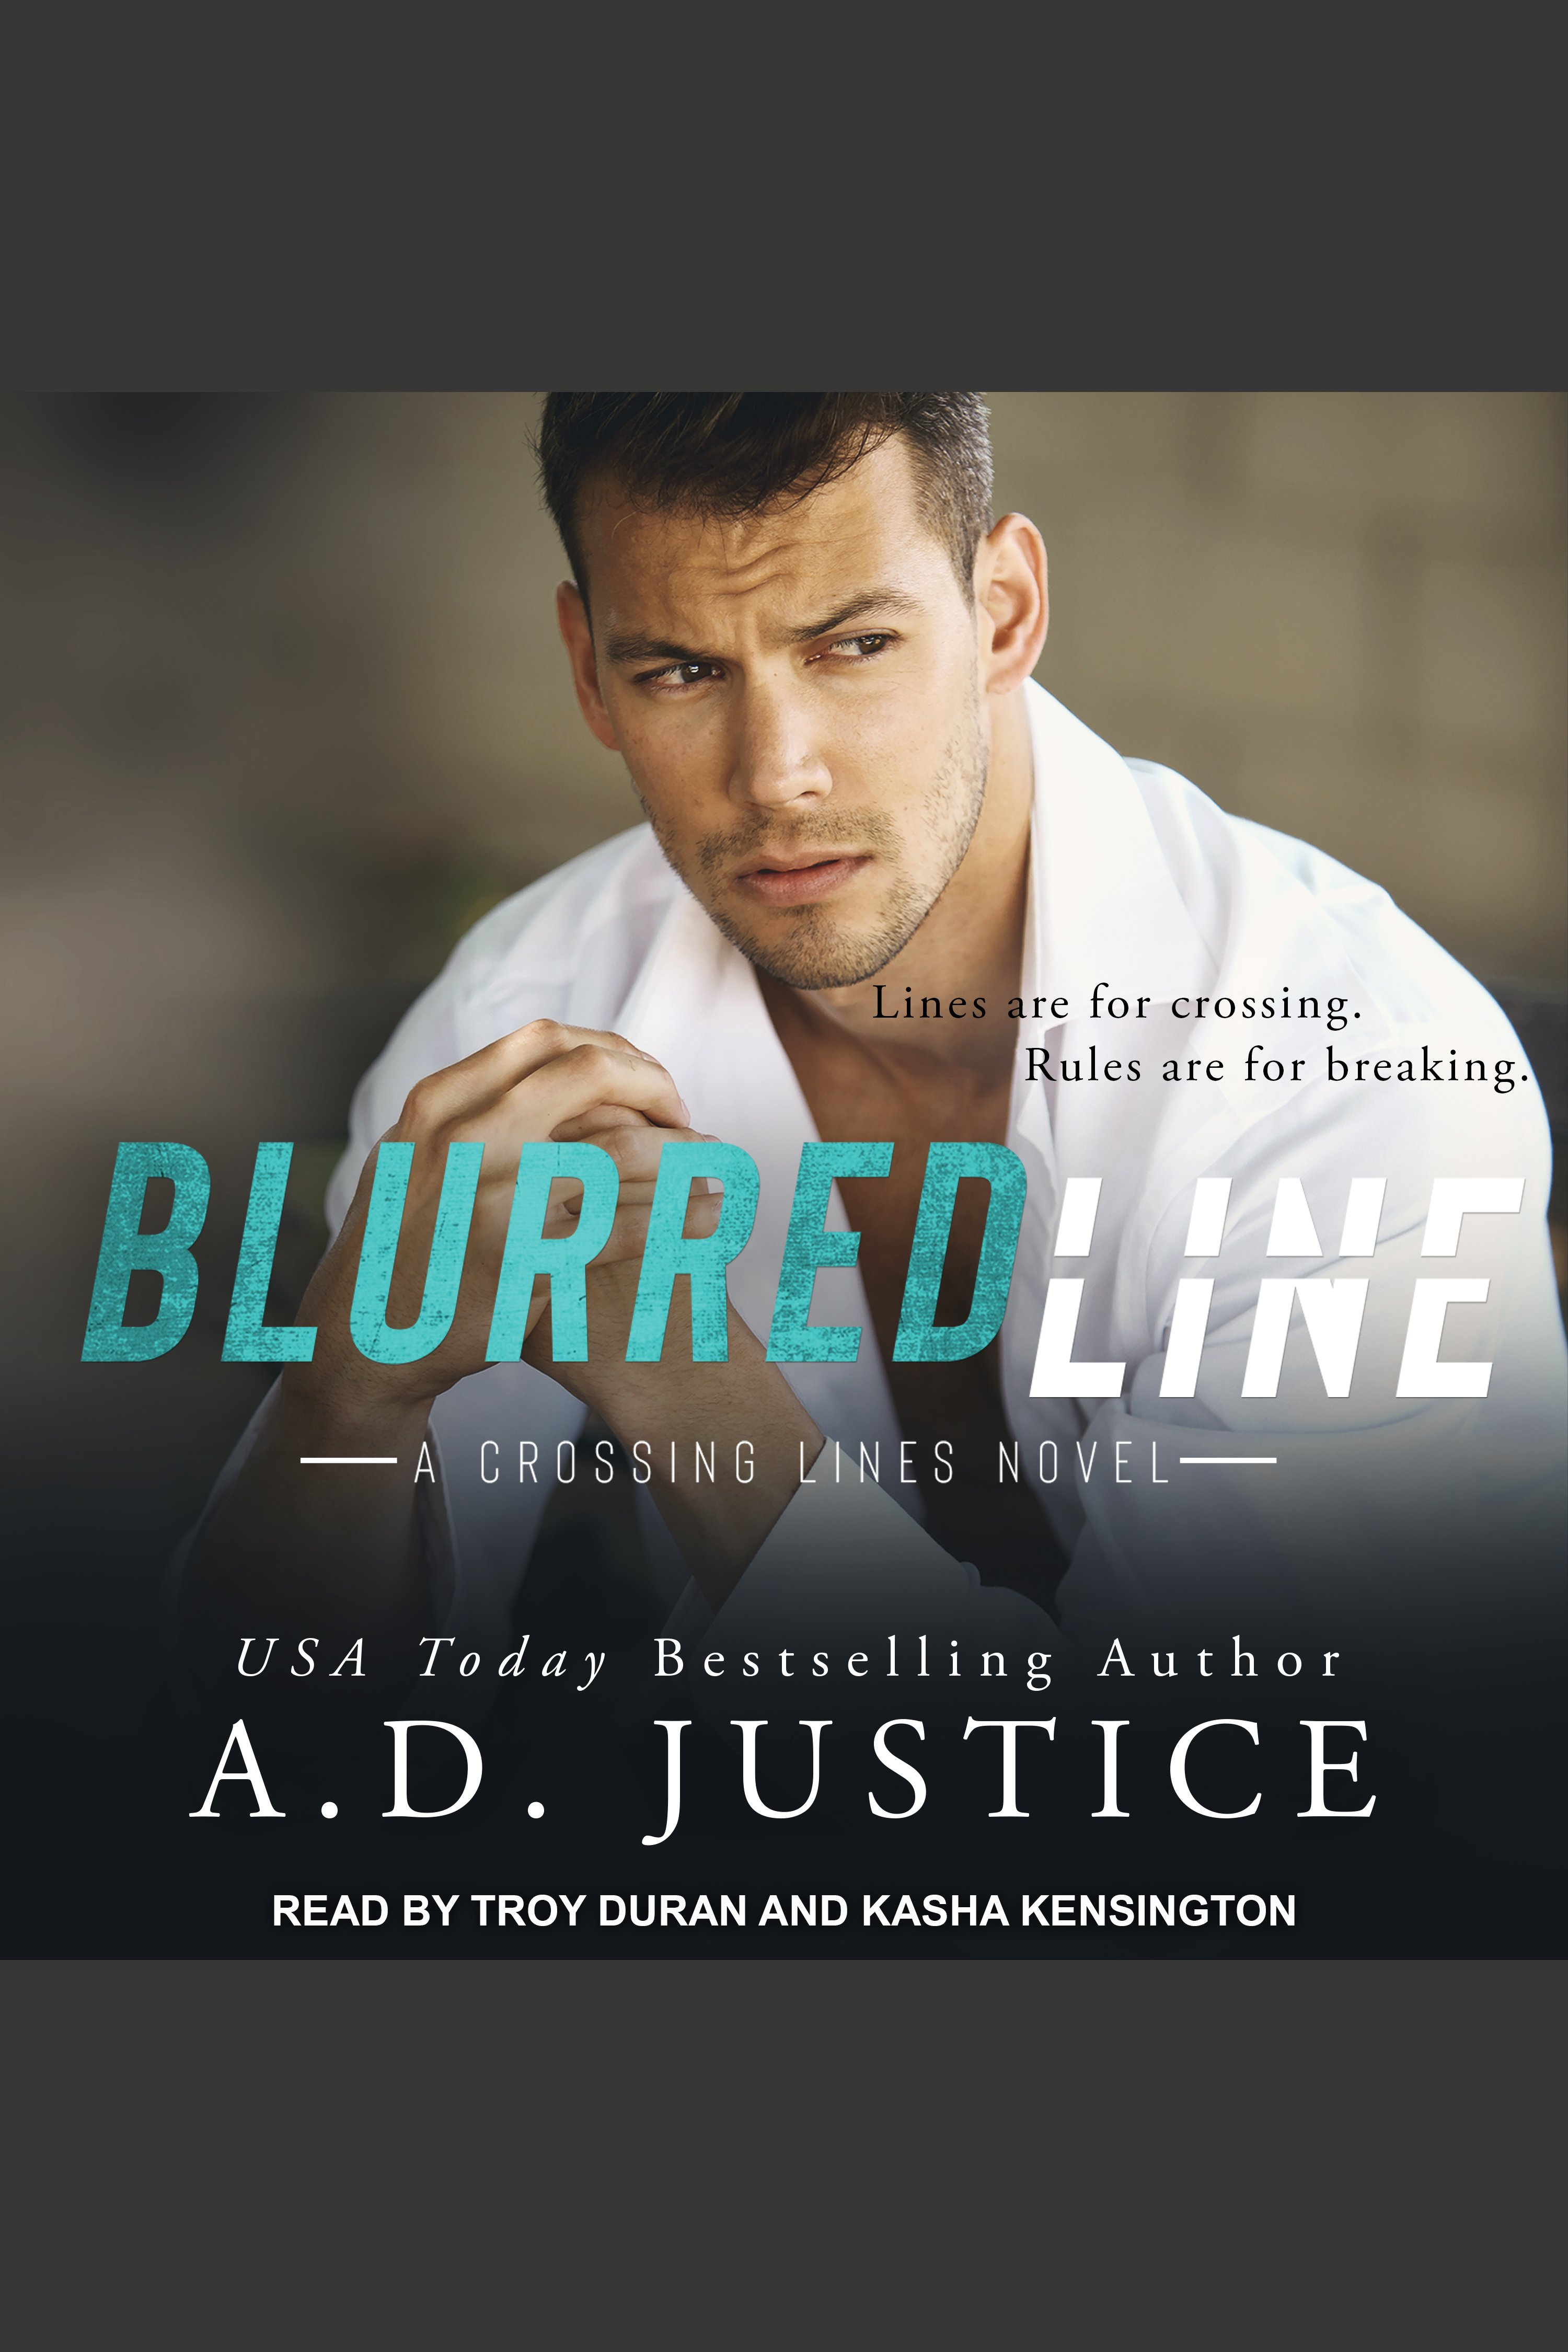 Blurred line cover image